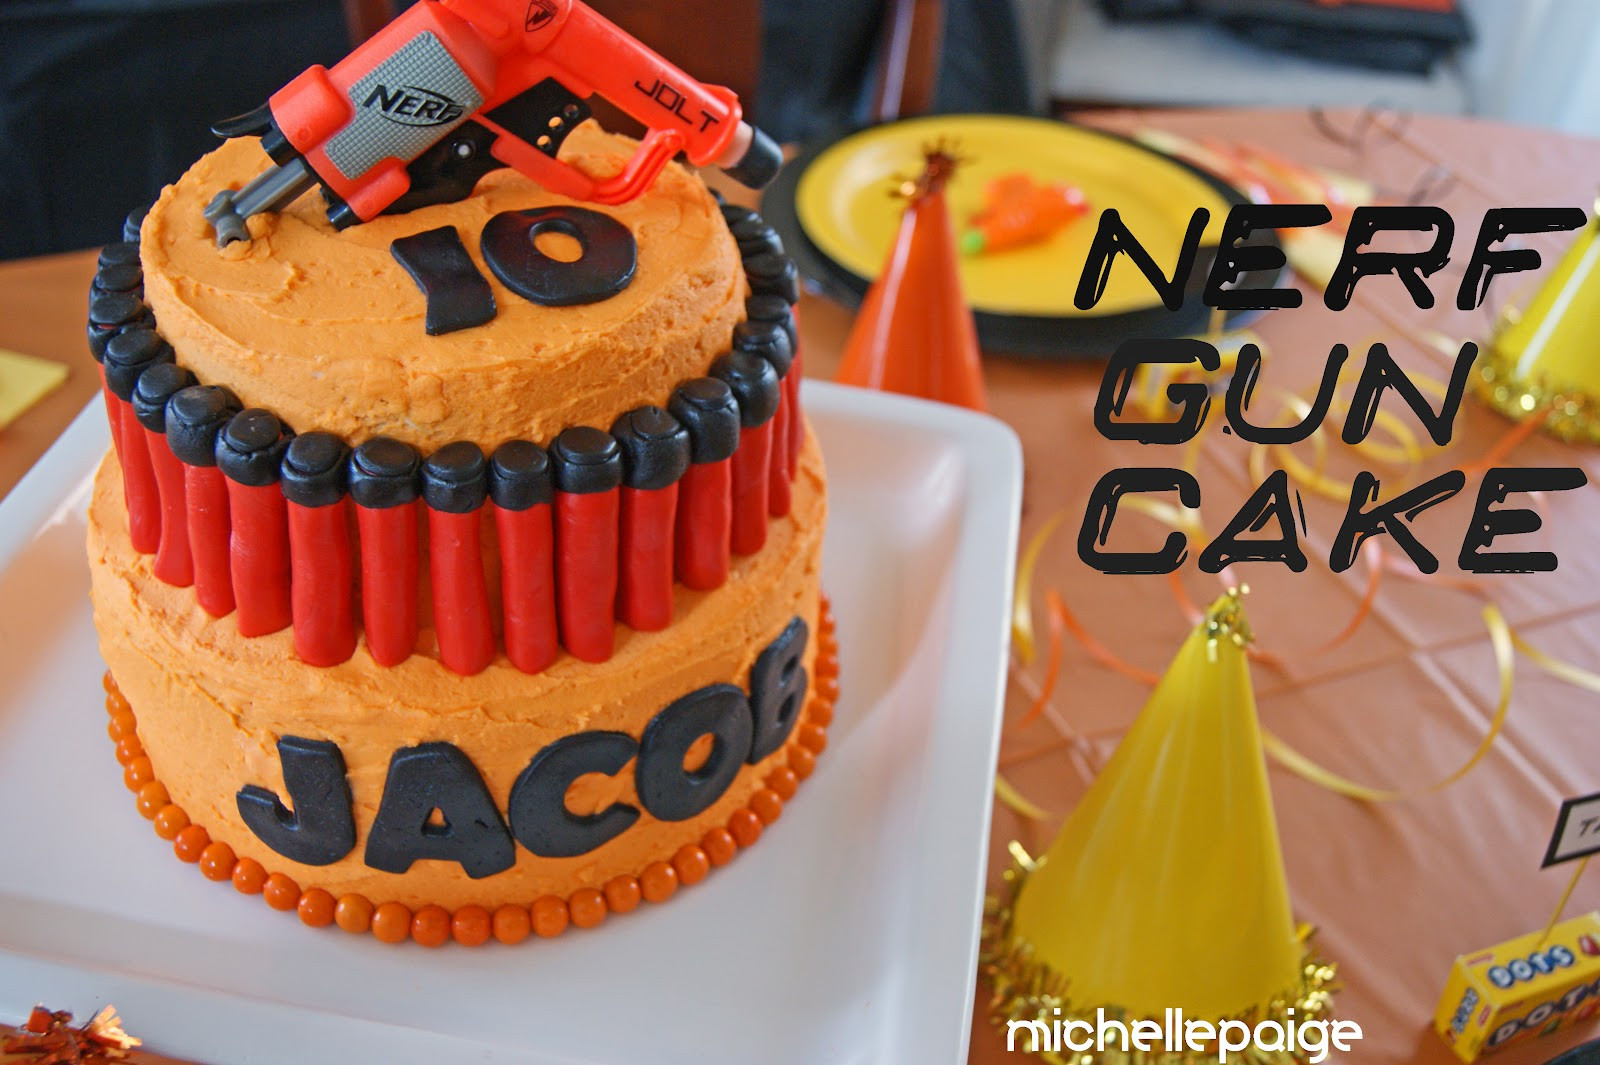 Best ideas about Nerf Gun Birthday Cake . Save or Pin michelle paige blogs Nerf Gun Party Now.